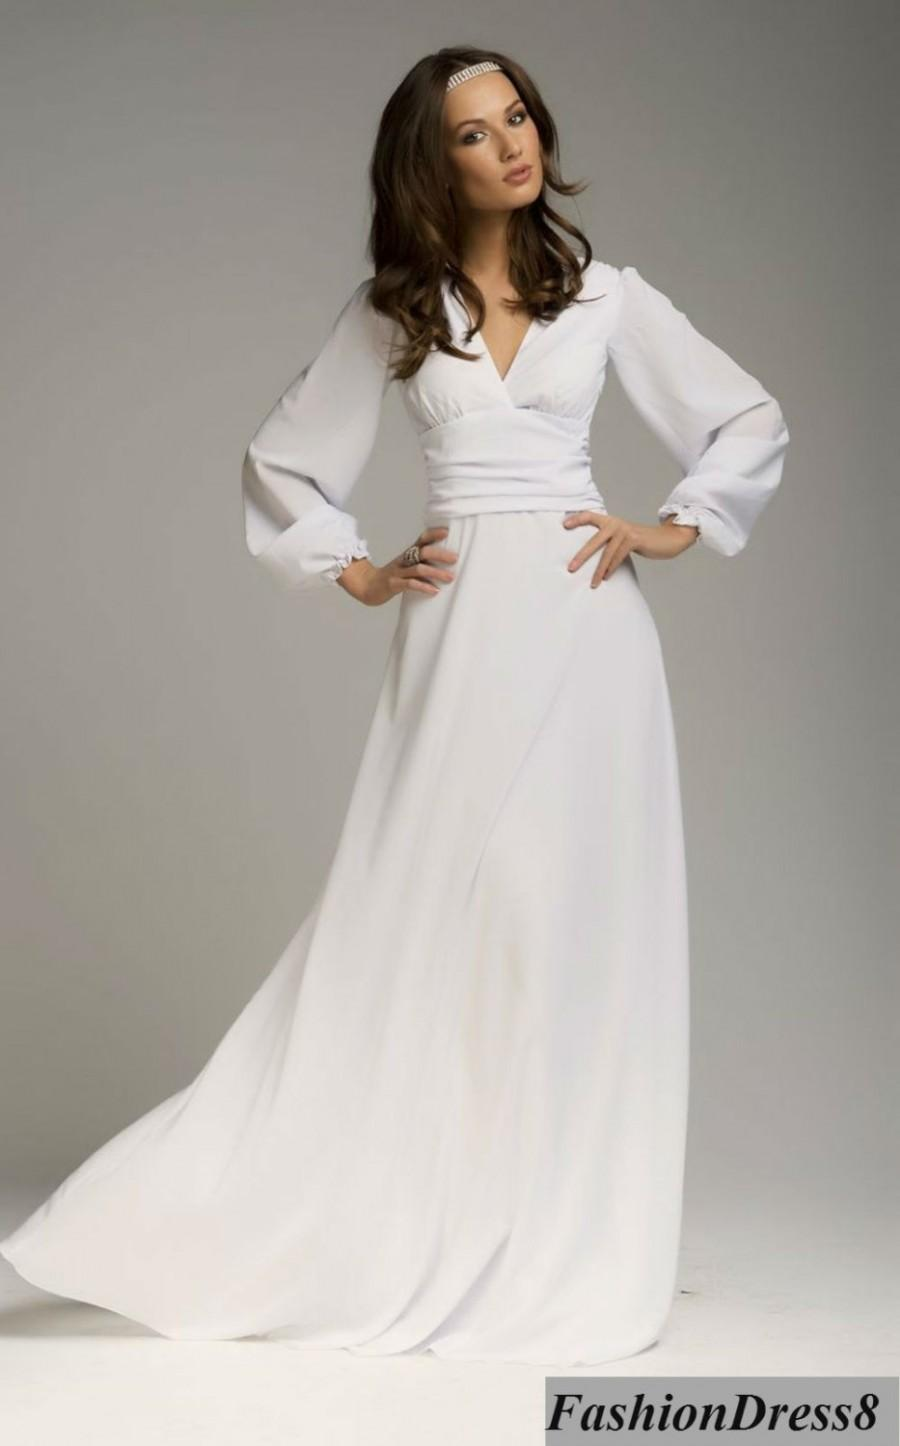 Long sleeve white wedding dress